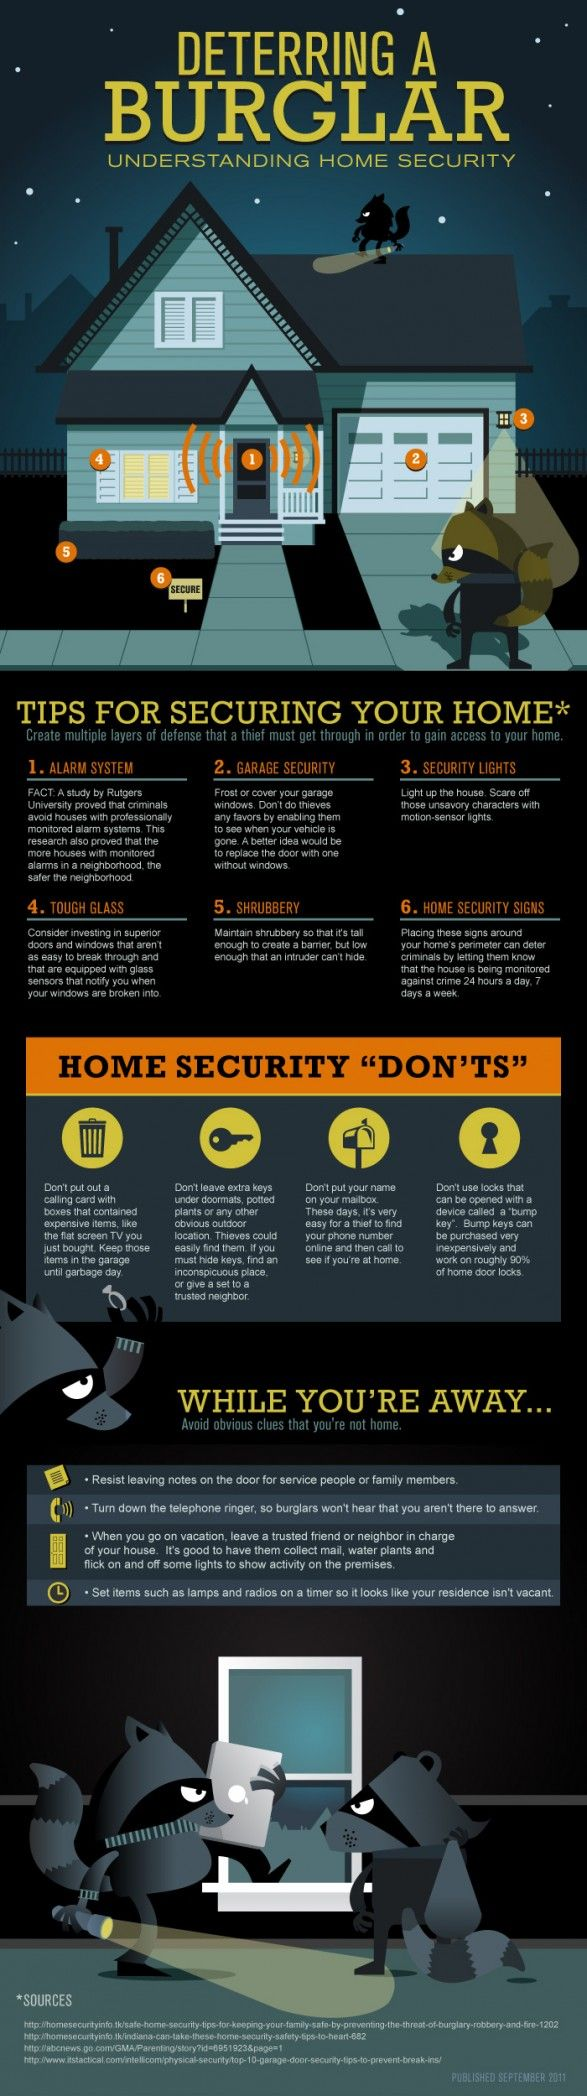 home security tips #Safe #Security - wwww.homecontrols.com Http://www.thelockguy.com.au